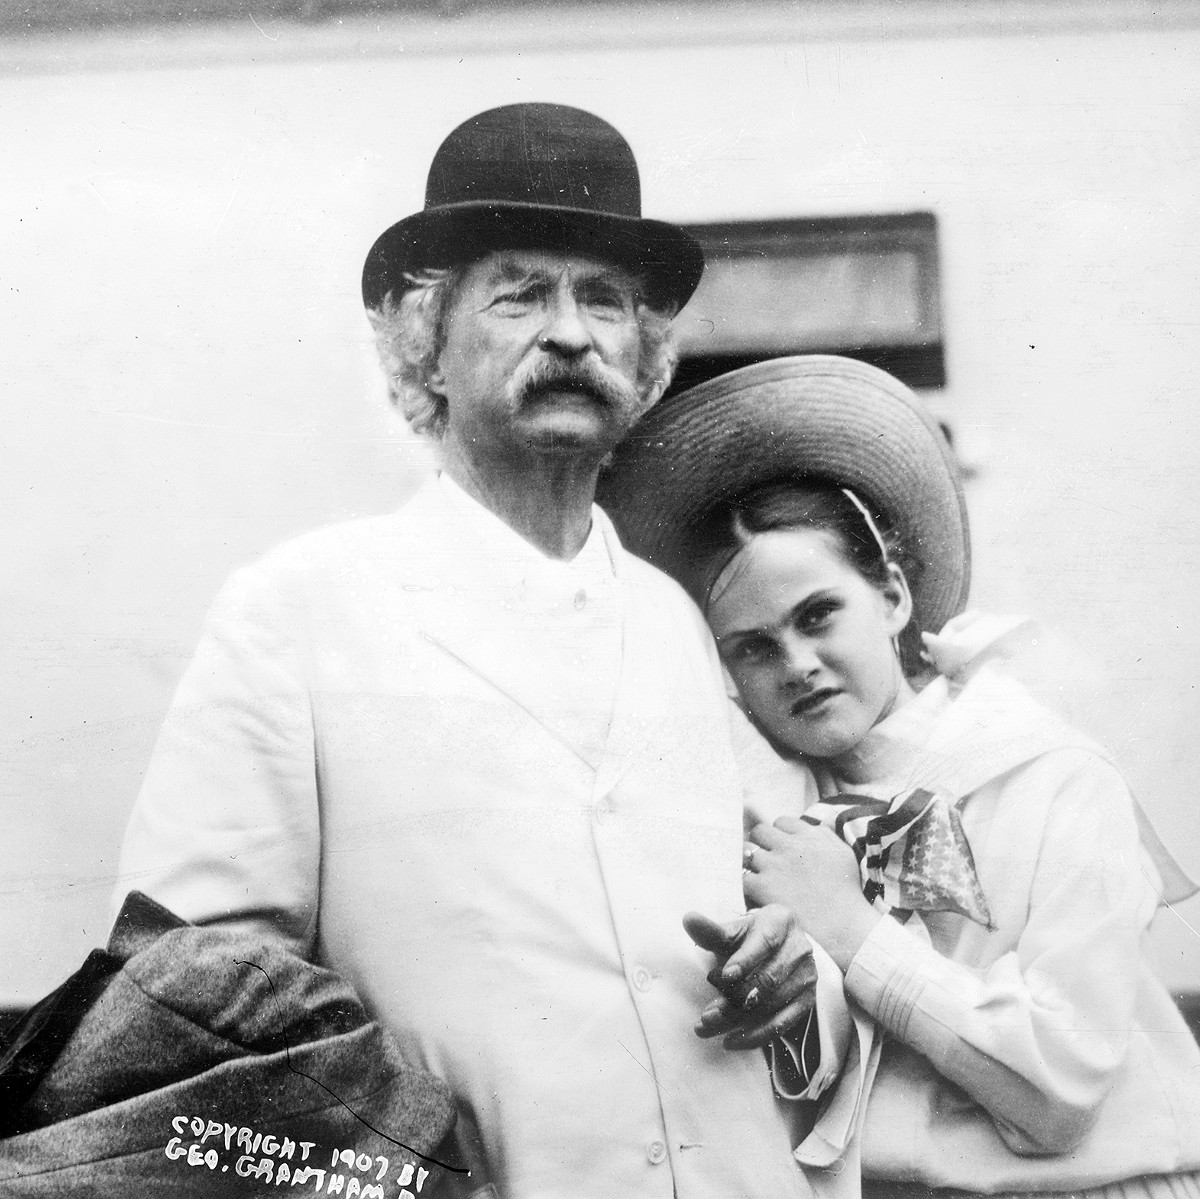 Starting in his seventies, Mark Twain began the creepy hobby of 'collecting' young, innocent girls